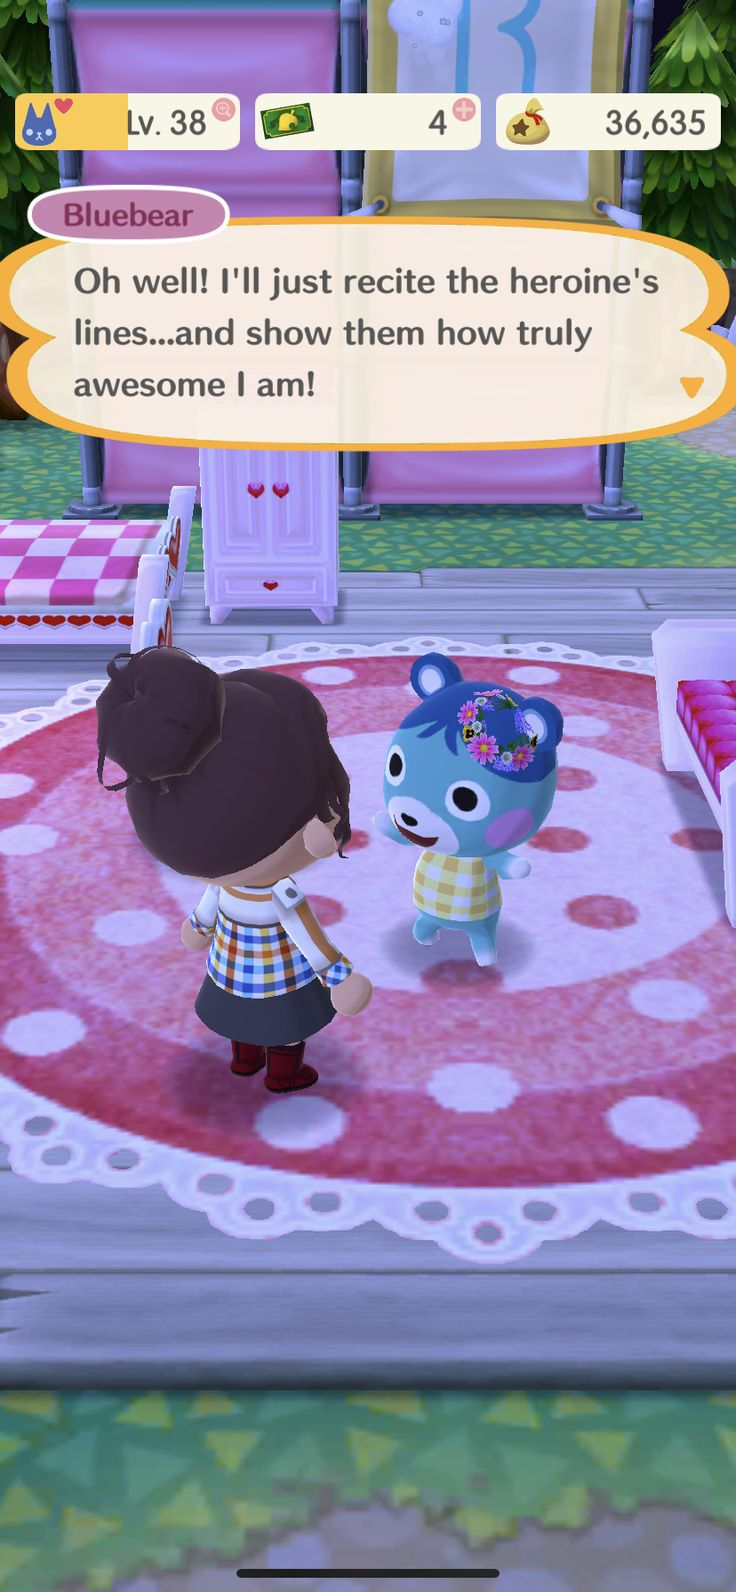 18+ How do you get star fragments in animal crossing images